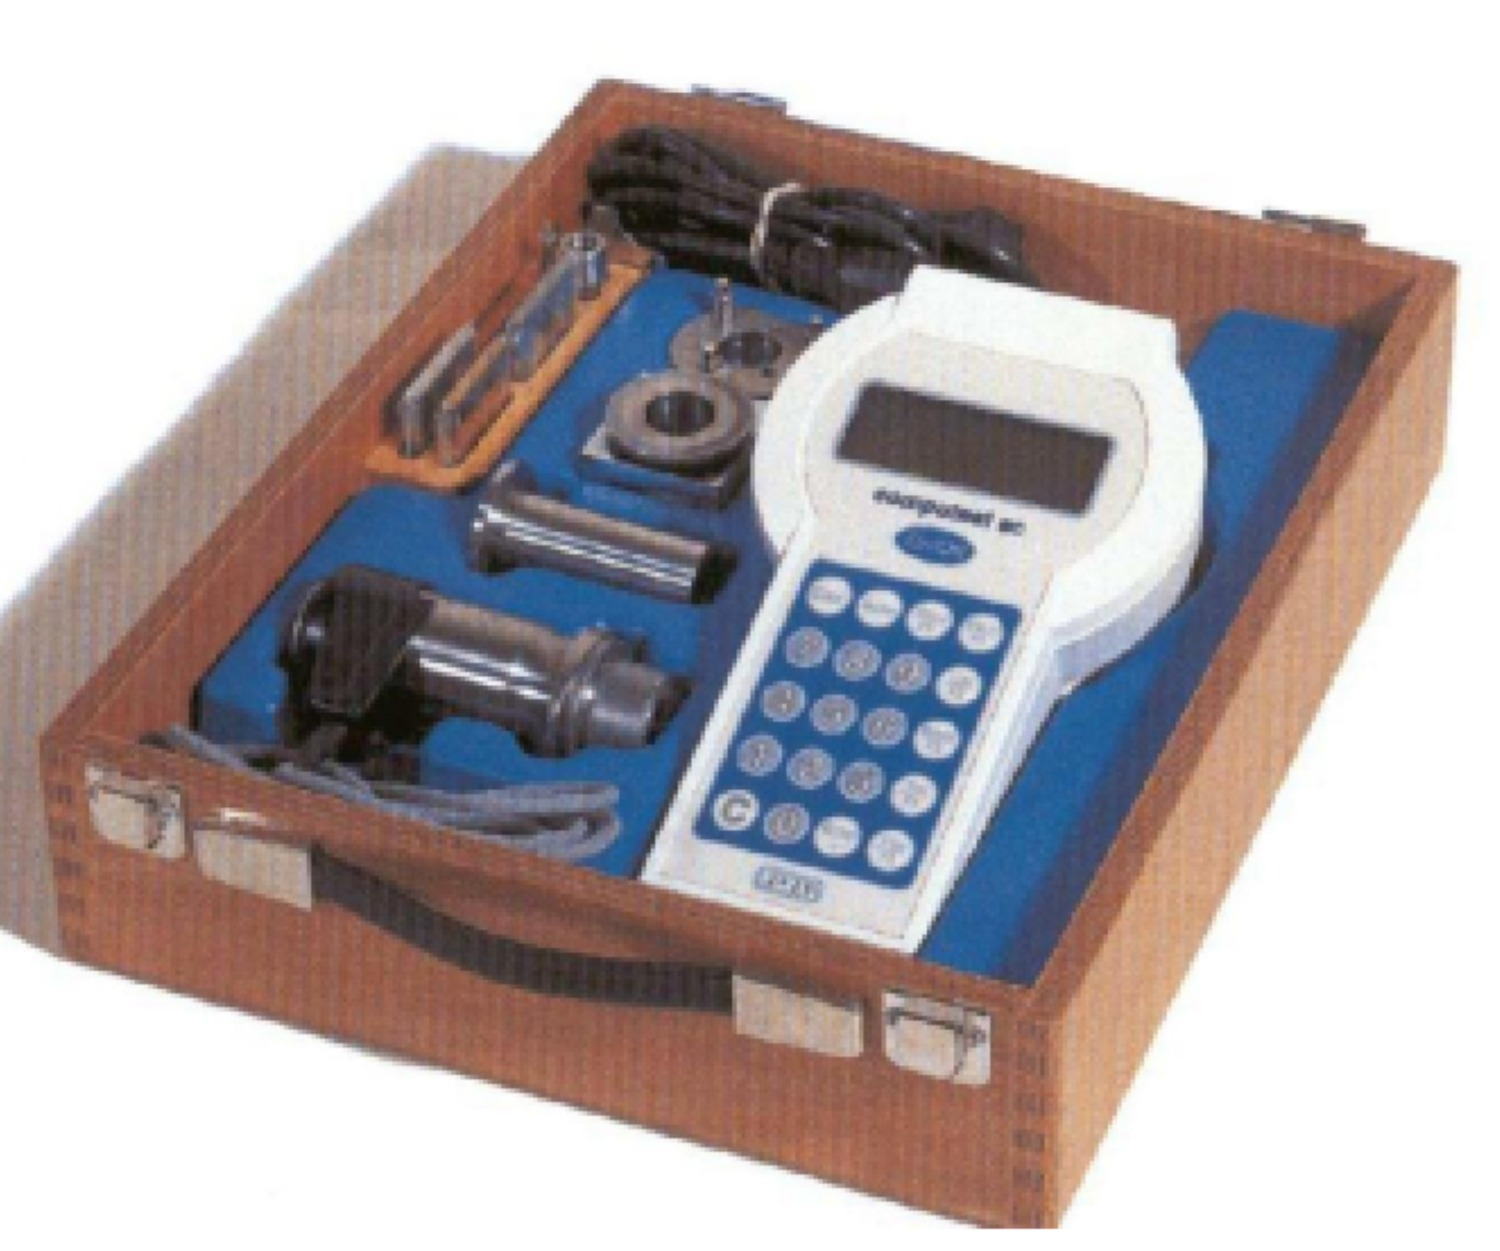 Portable industrial hardness testers with digital read-out